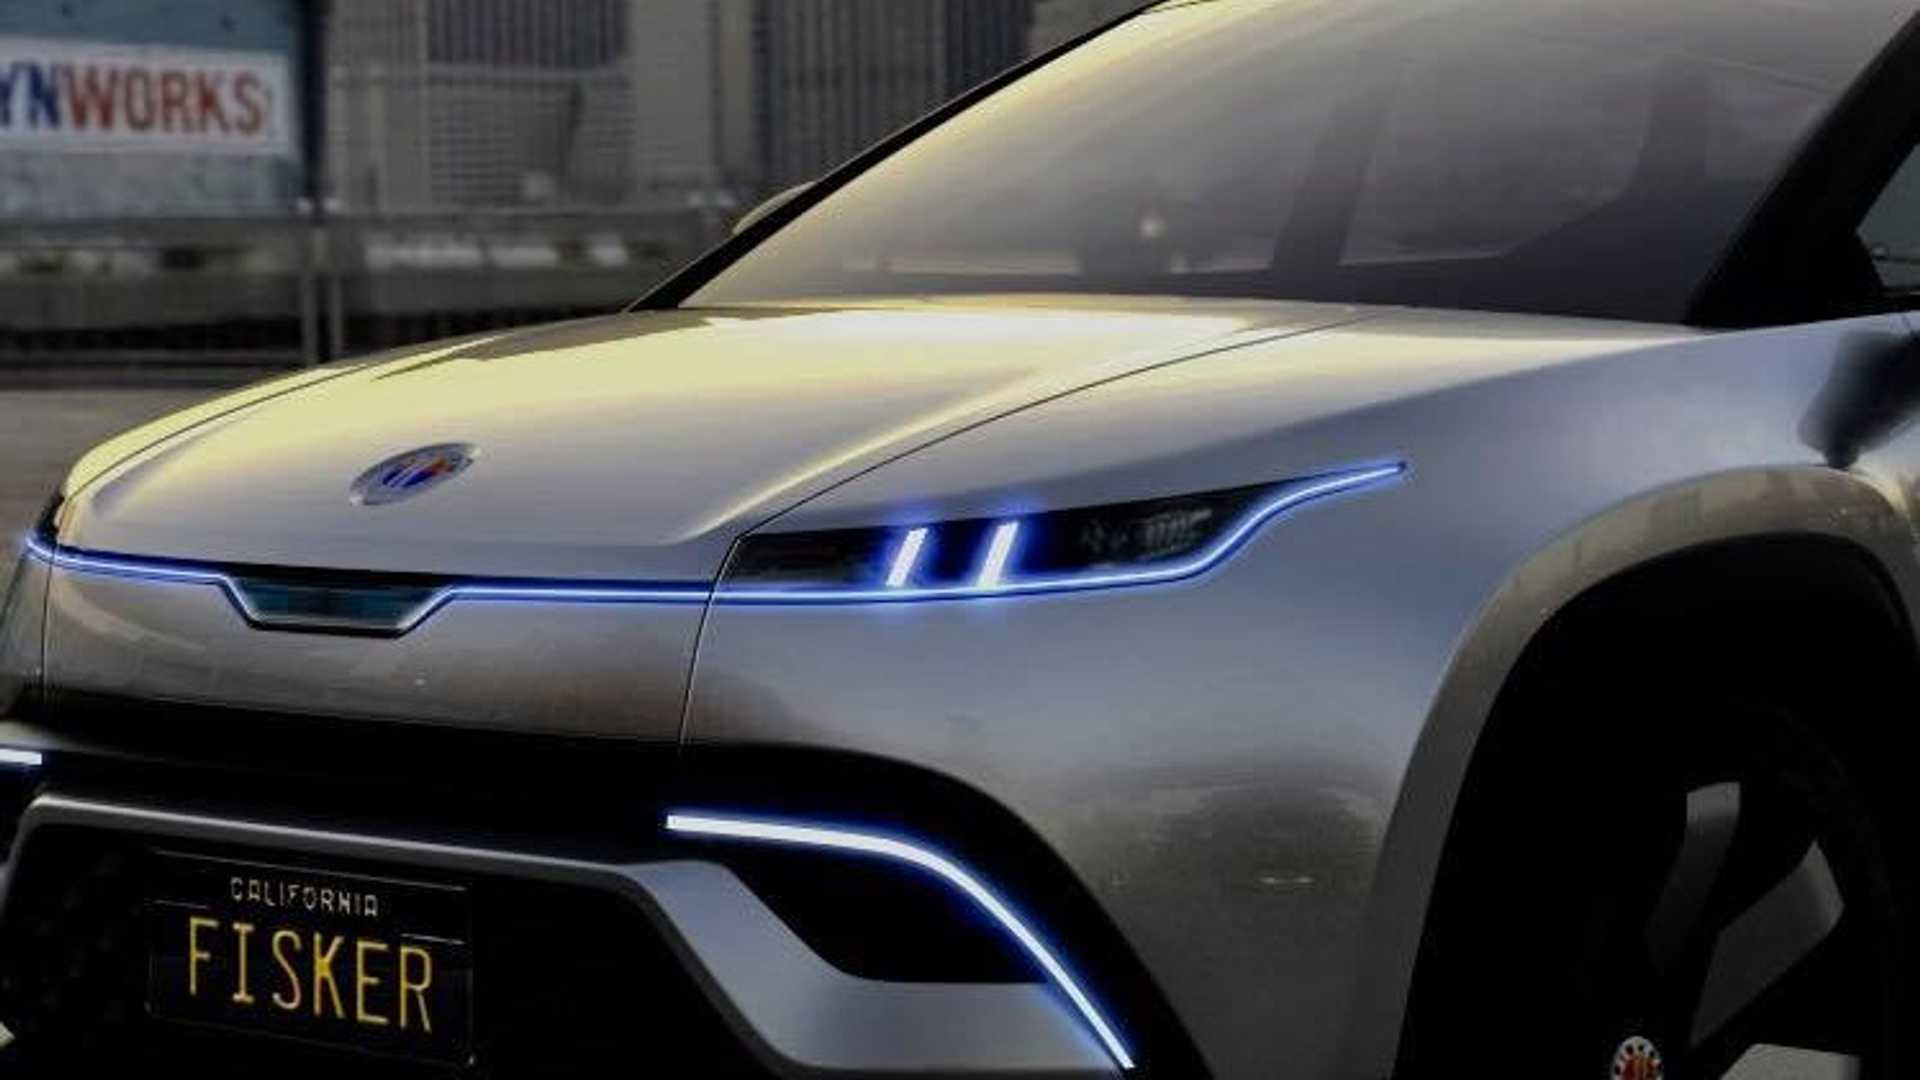 Teaser for Fisker electric SUV